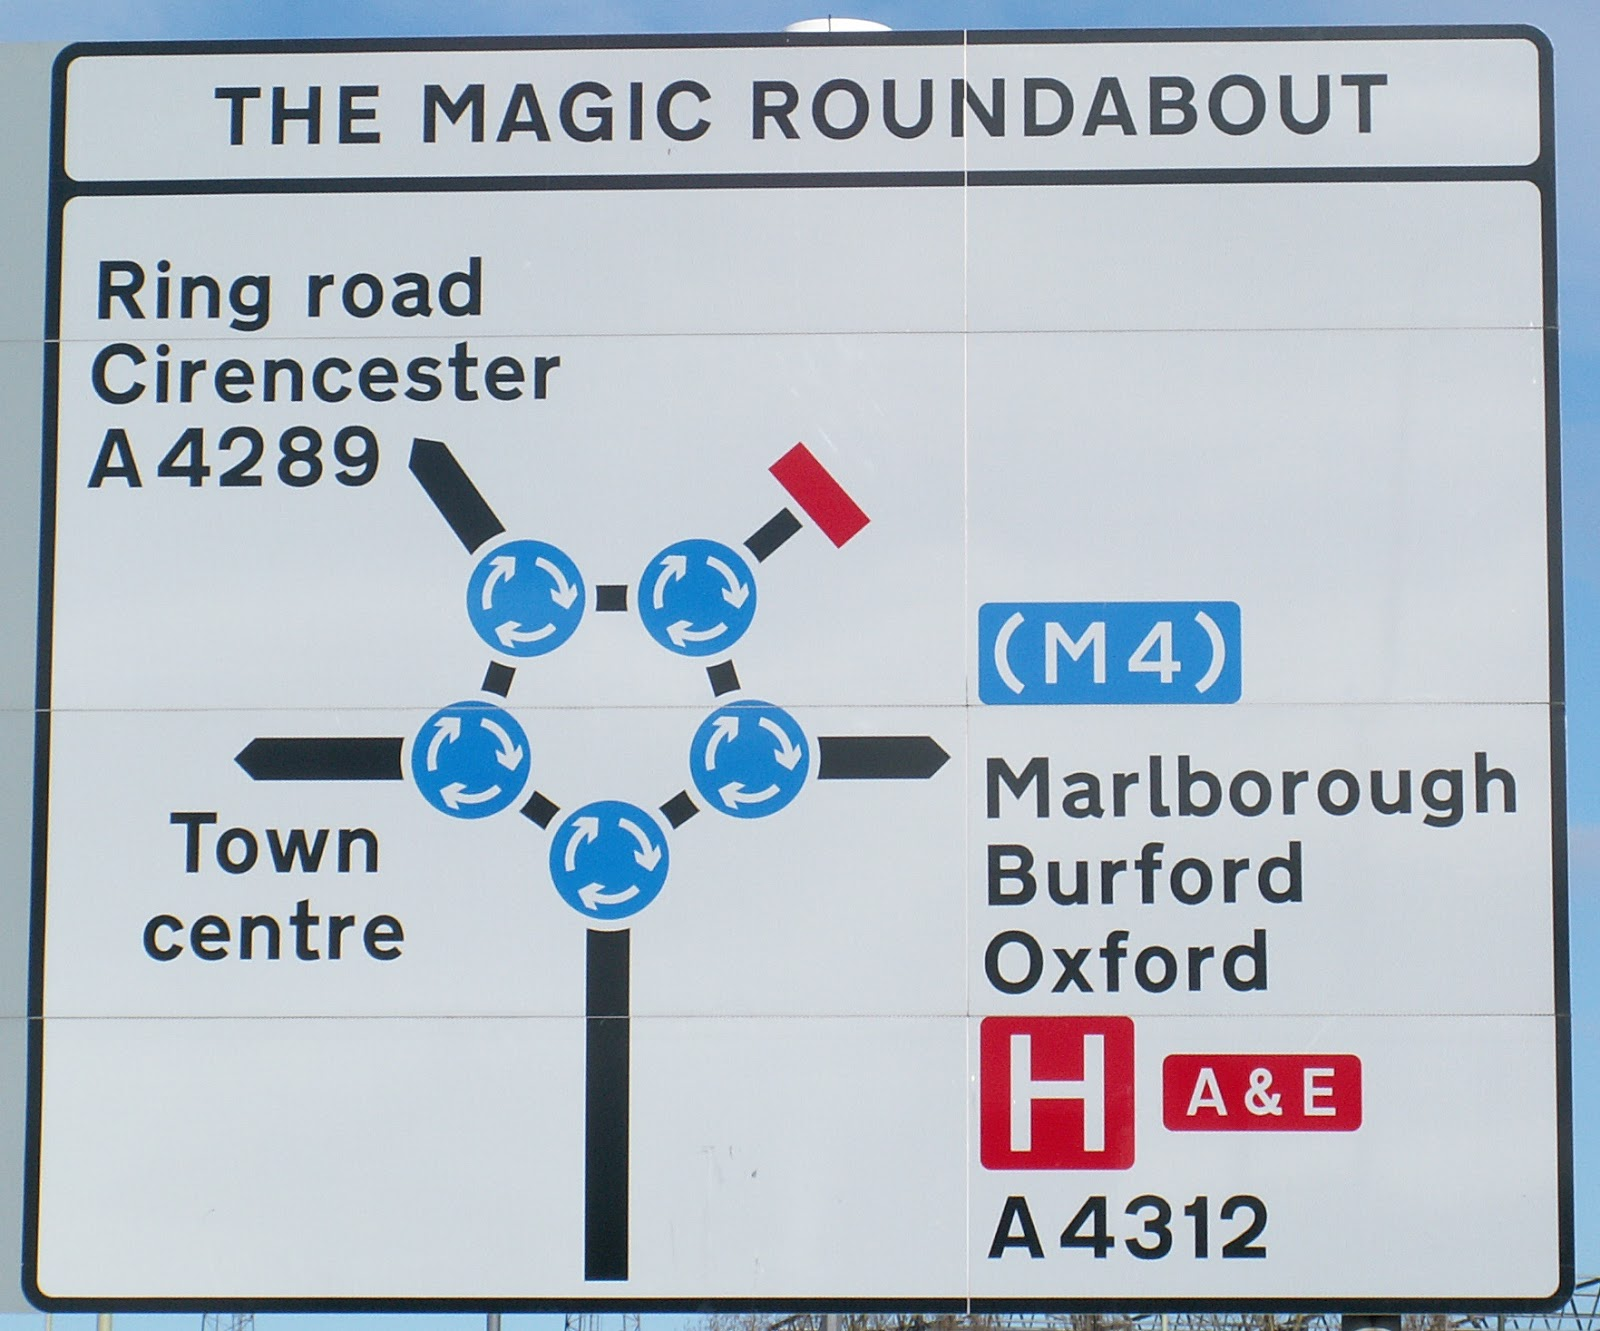 Road sign for the Magic Roundabout, showing a central roundabout surrounded by five smaller satellite mini-iroundabouts